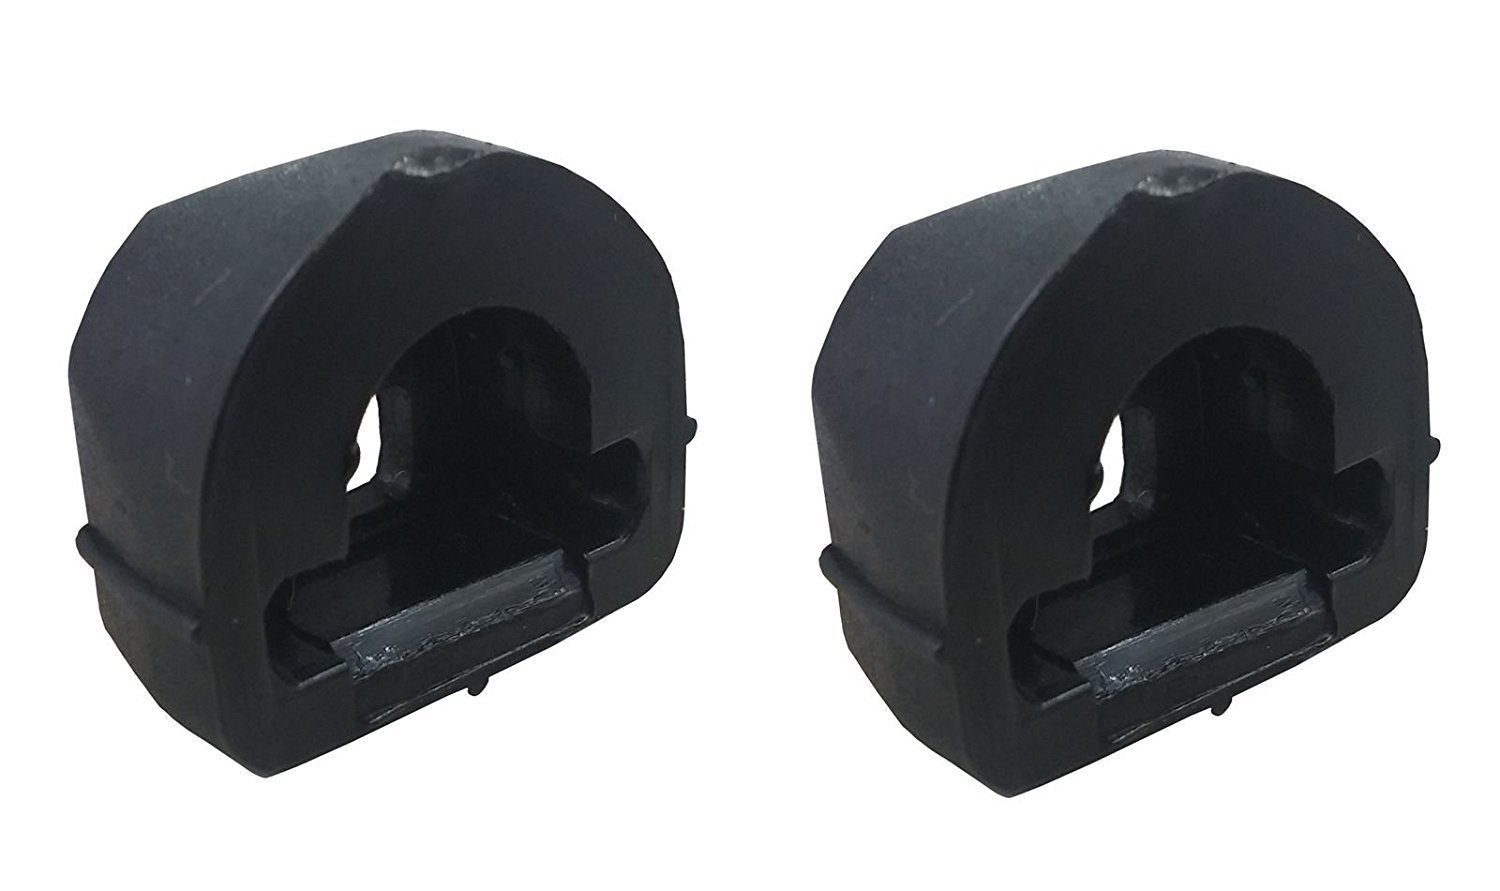 (2) 886137 Porter Cable NOSE CUSHION for FN250A Finish Nailer Genuine OEM Stanley Black&Decker